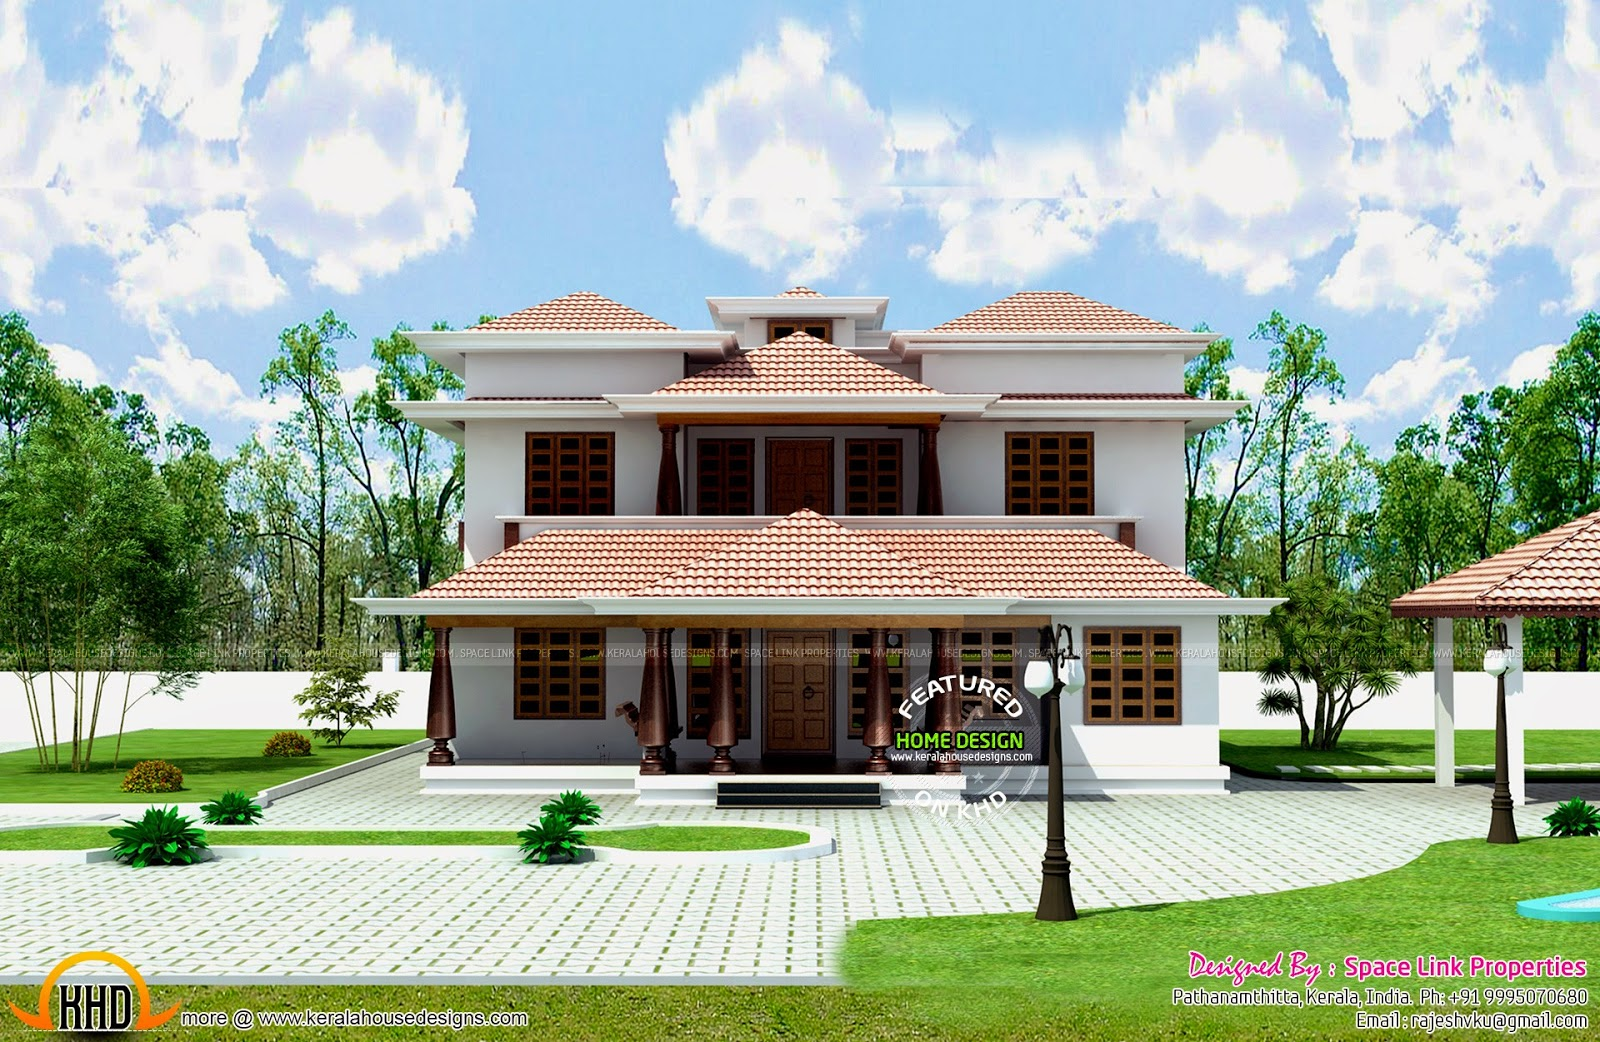 Typical kerala traditional house kerala home design and for Typical house design